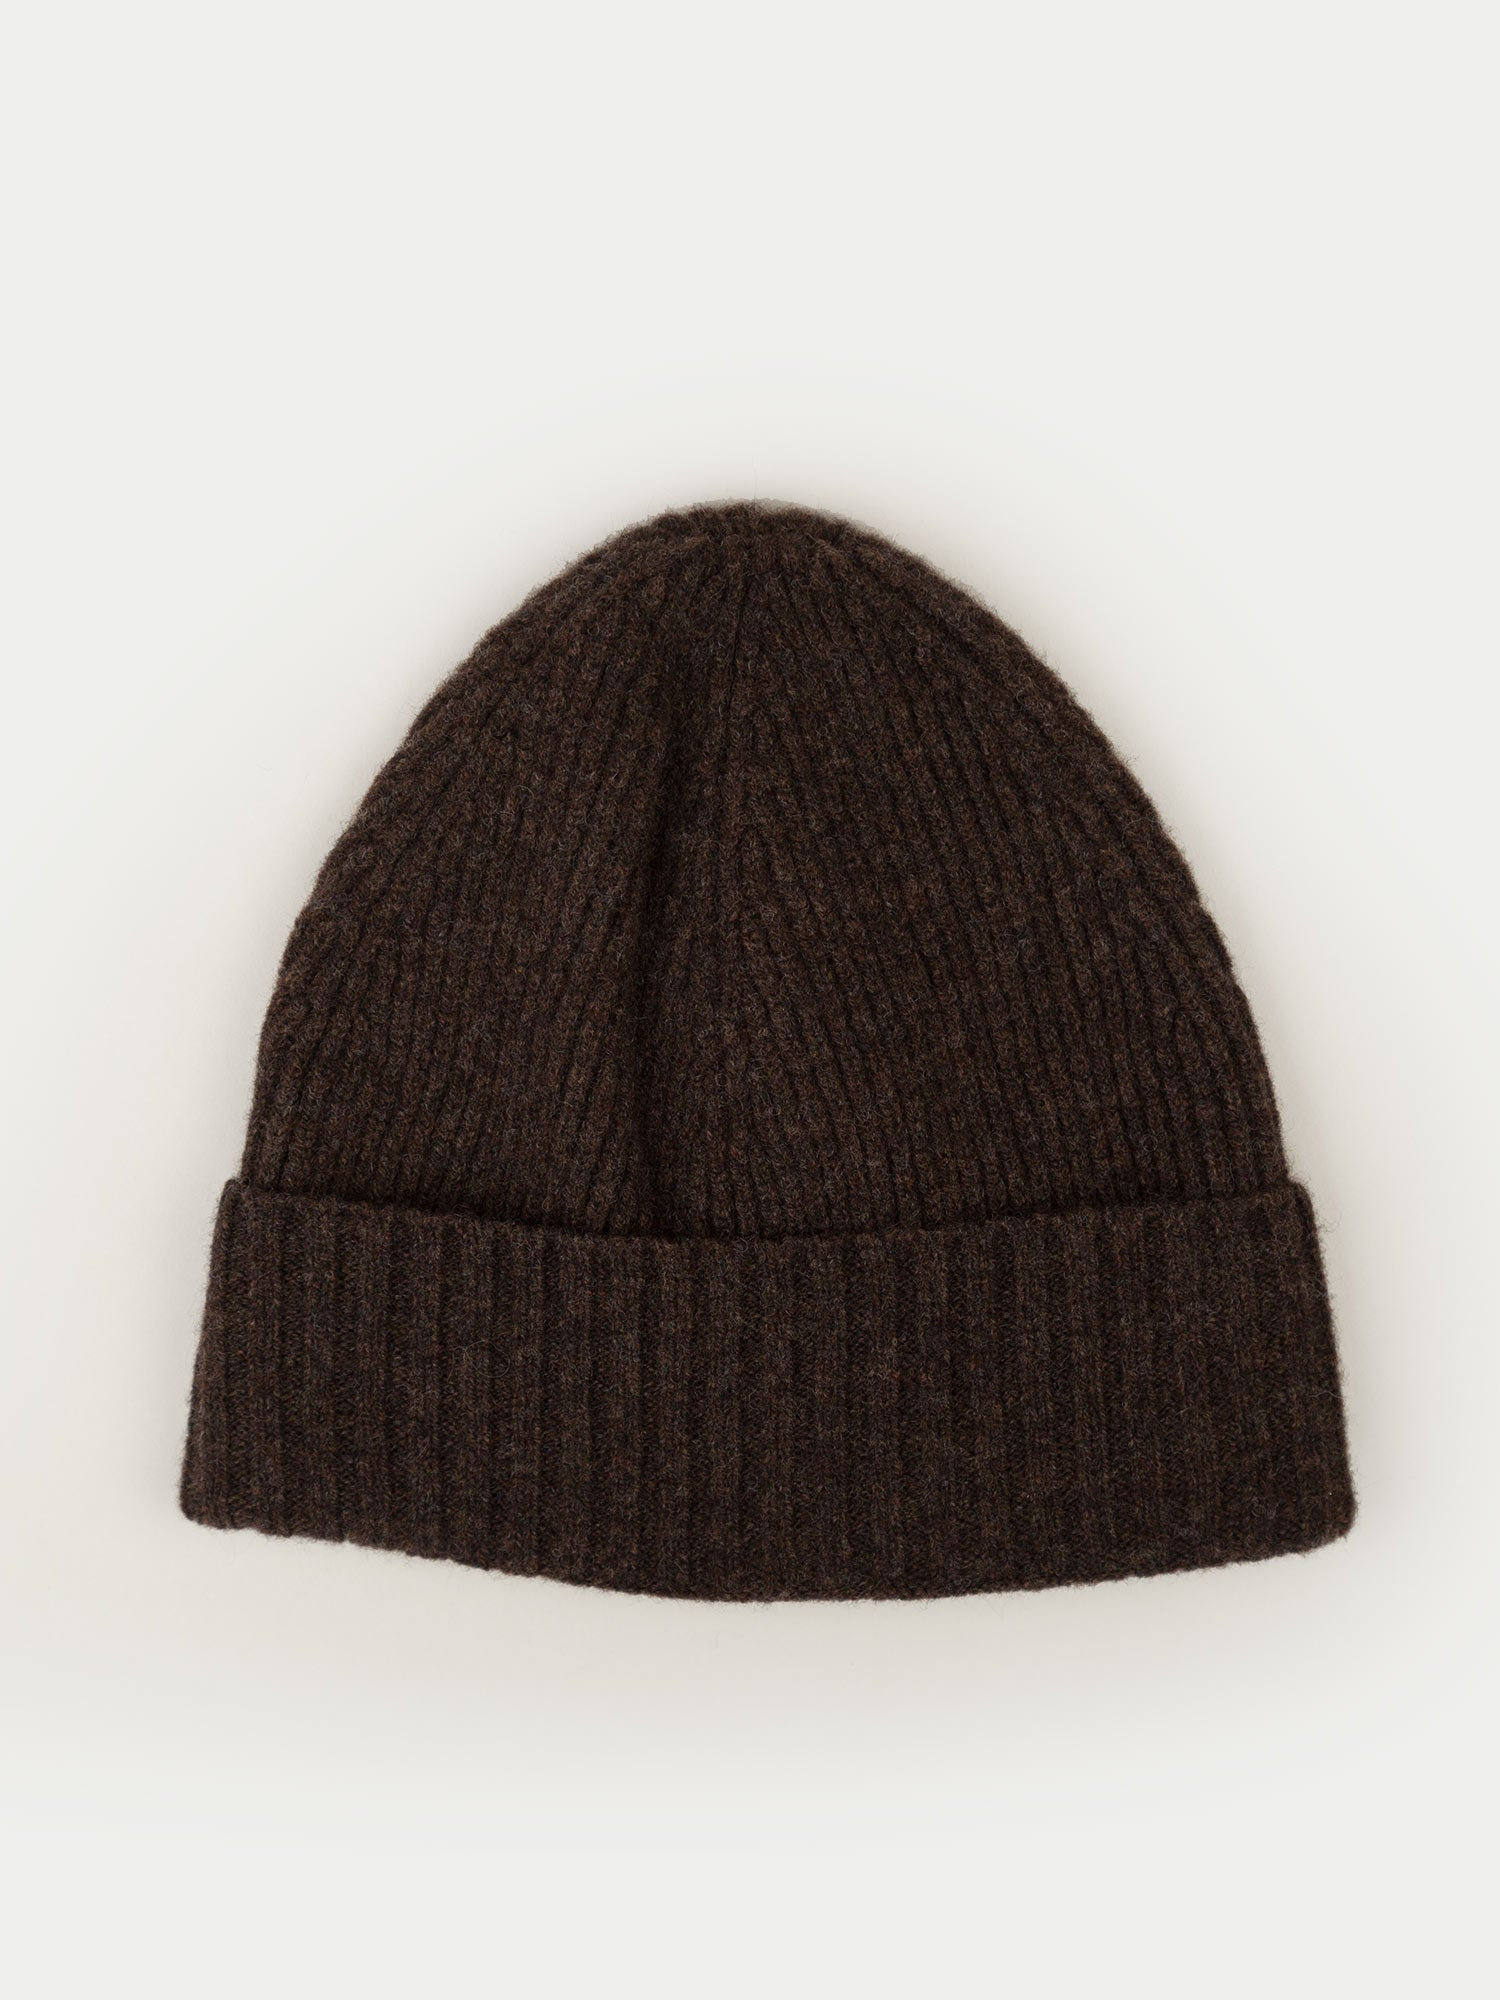 SIXES Reyes Beanie (Brown)